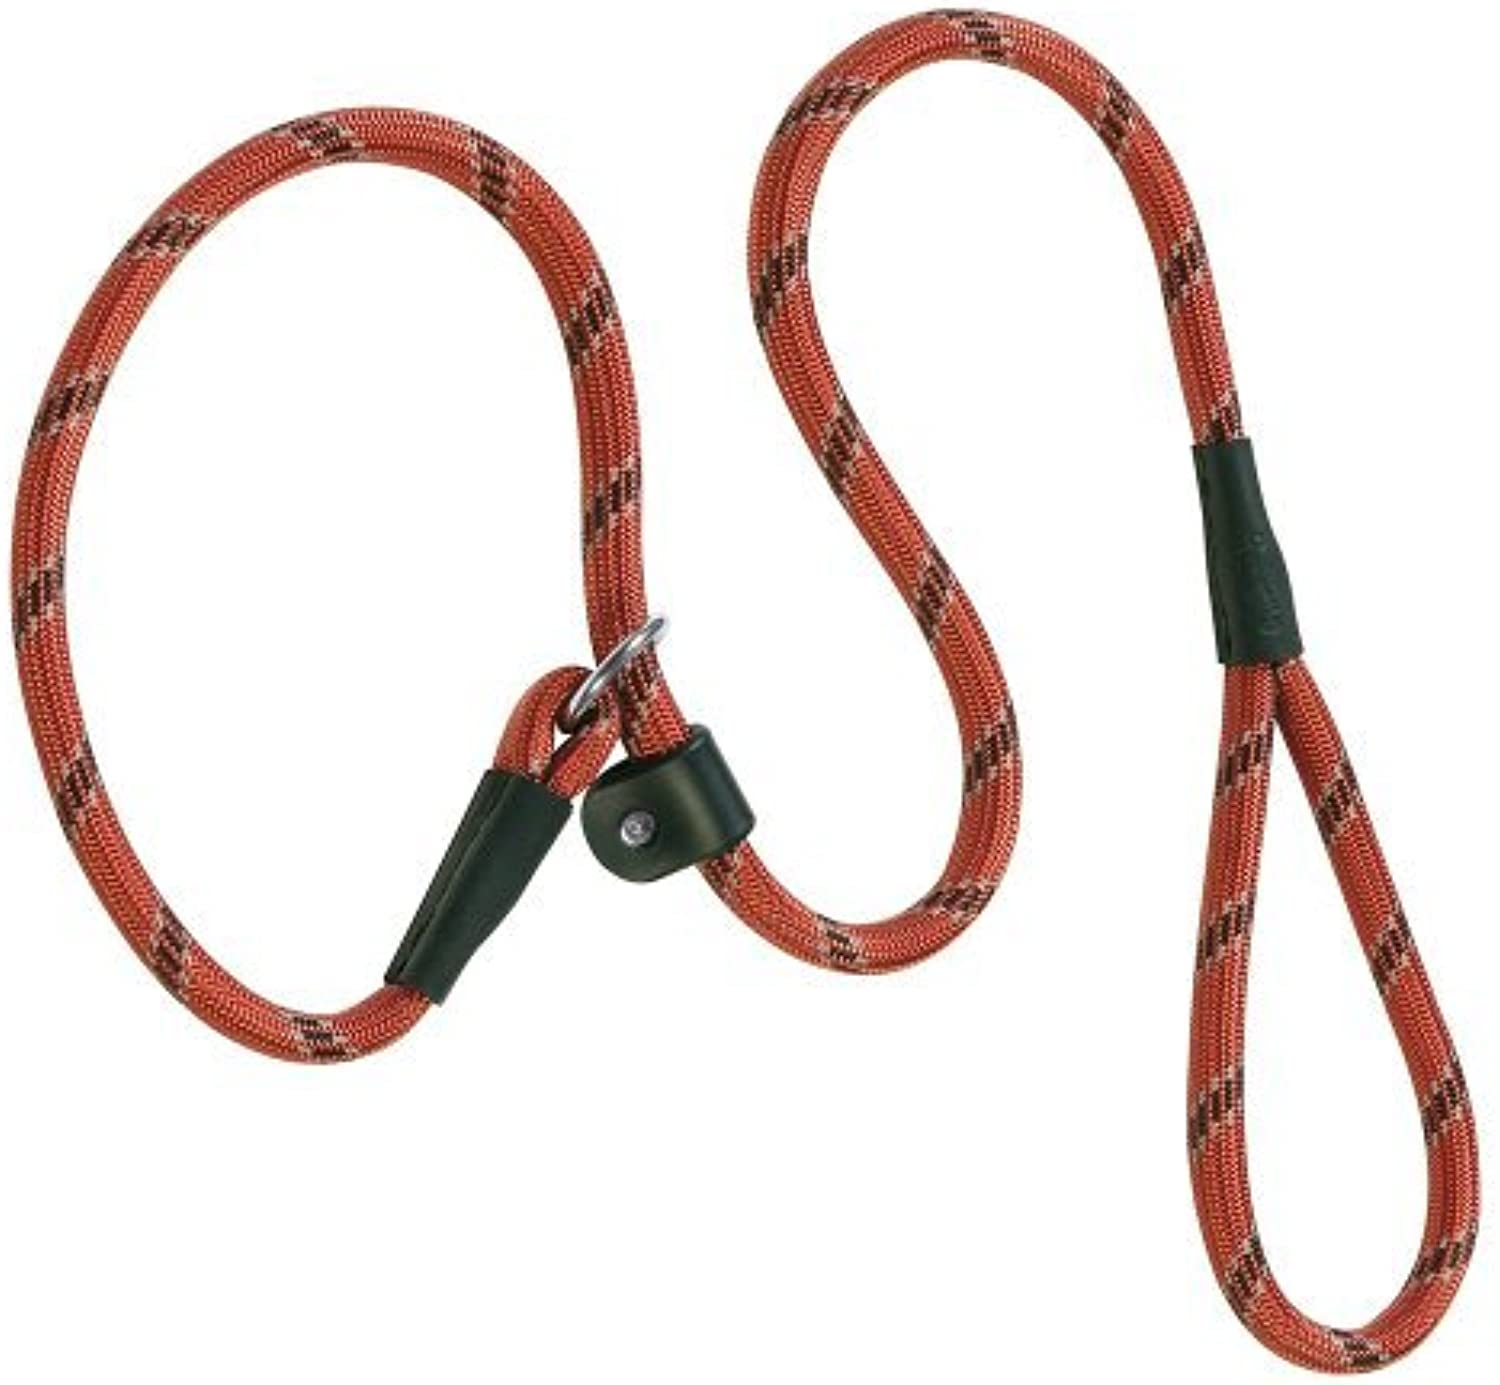 Weaver Leather Rope Slip Lead, 1 2 x 6Feet, Canyon Red by Weaver Leather